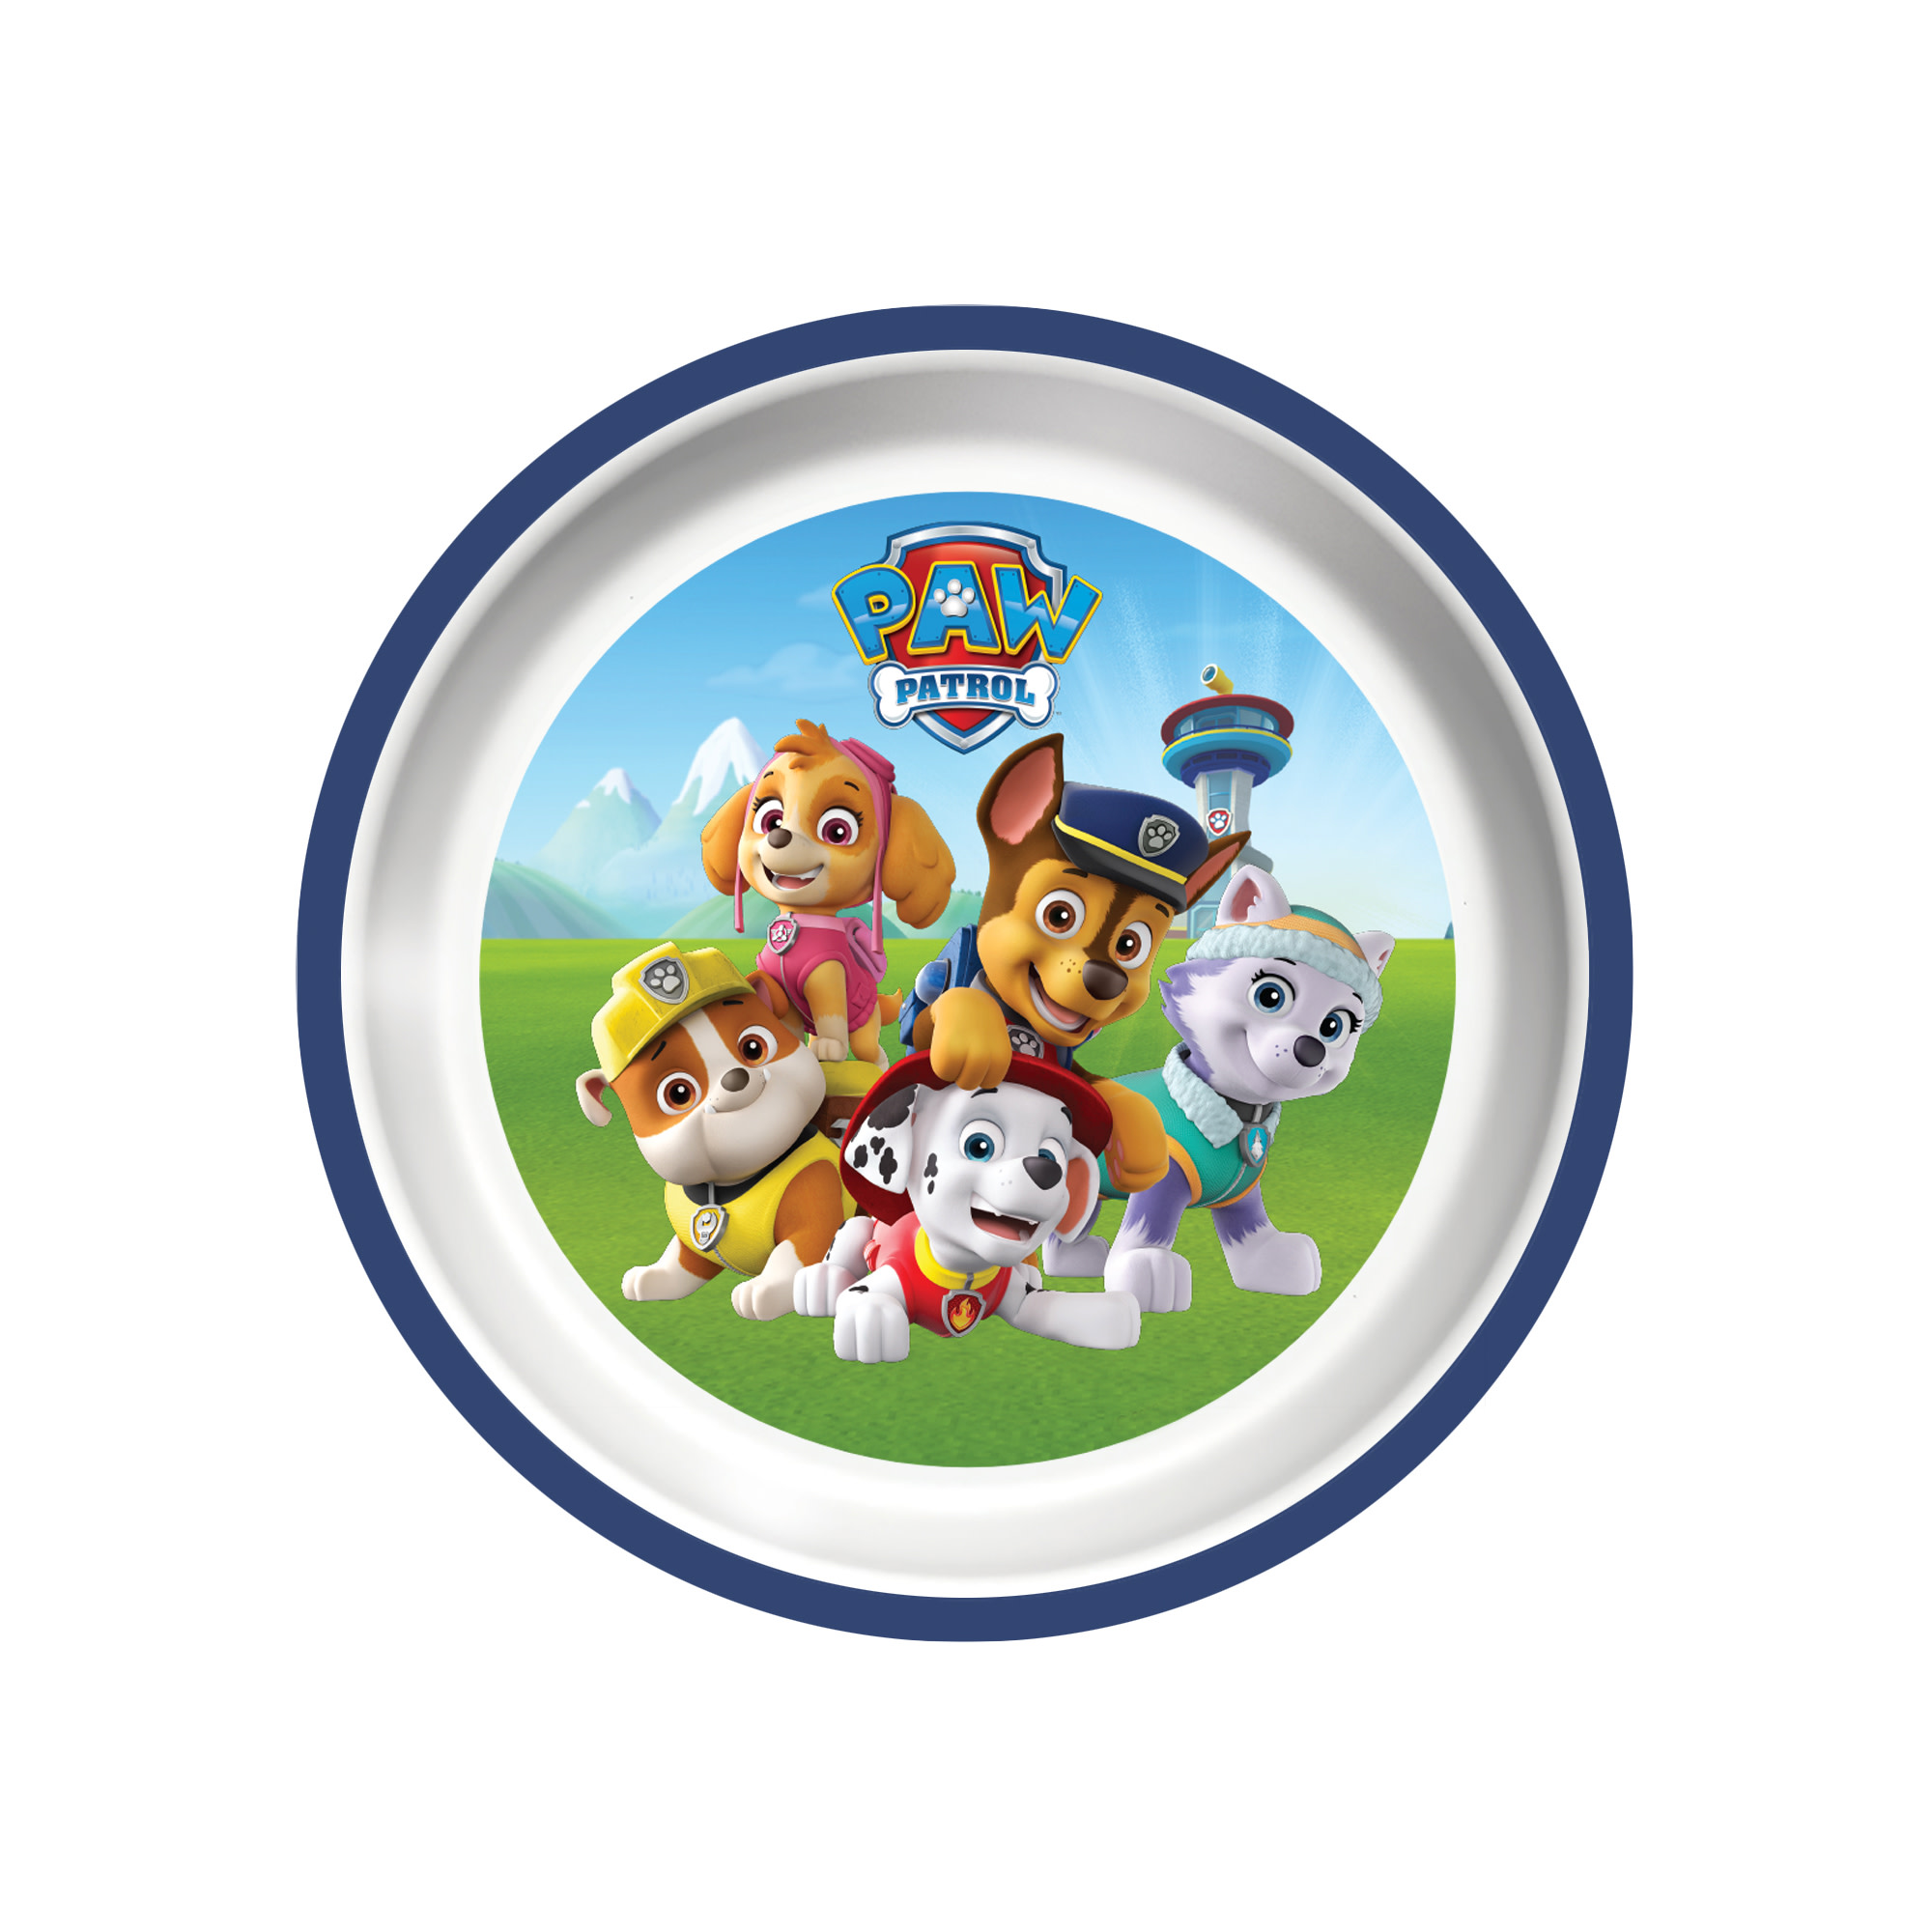 Playtex Mealtime Paw Patrol Boys' Plate - 1 Pack